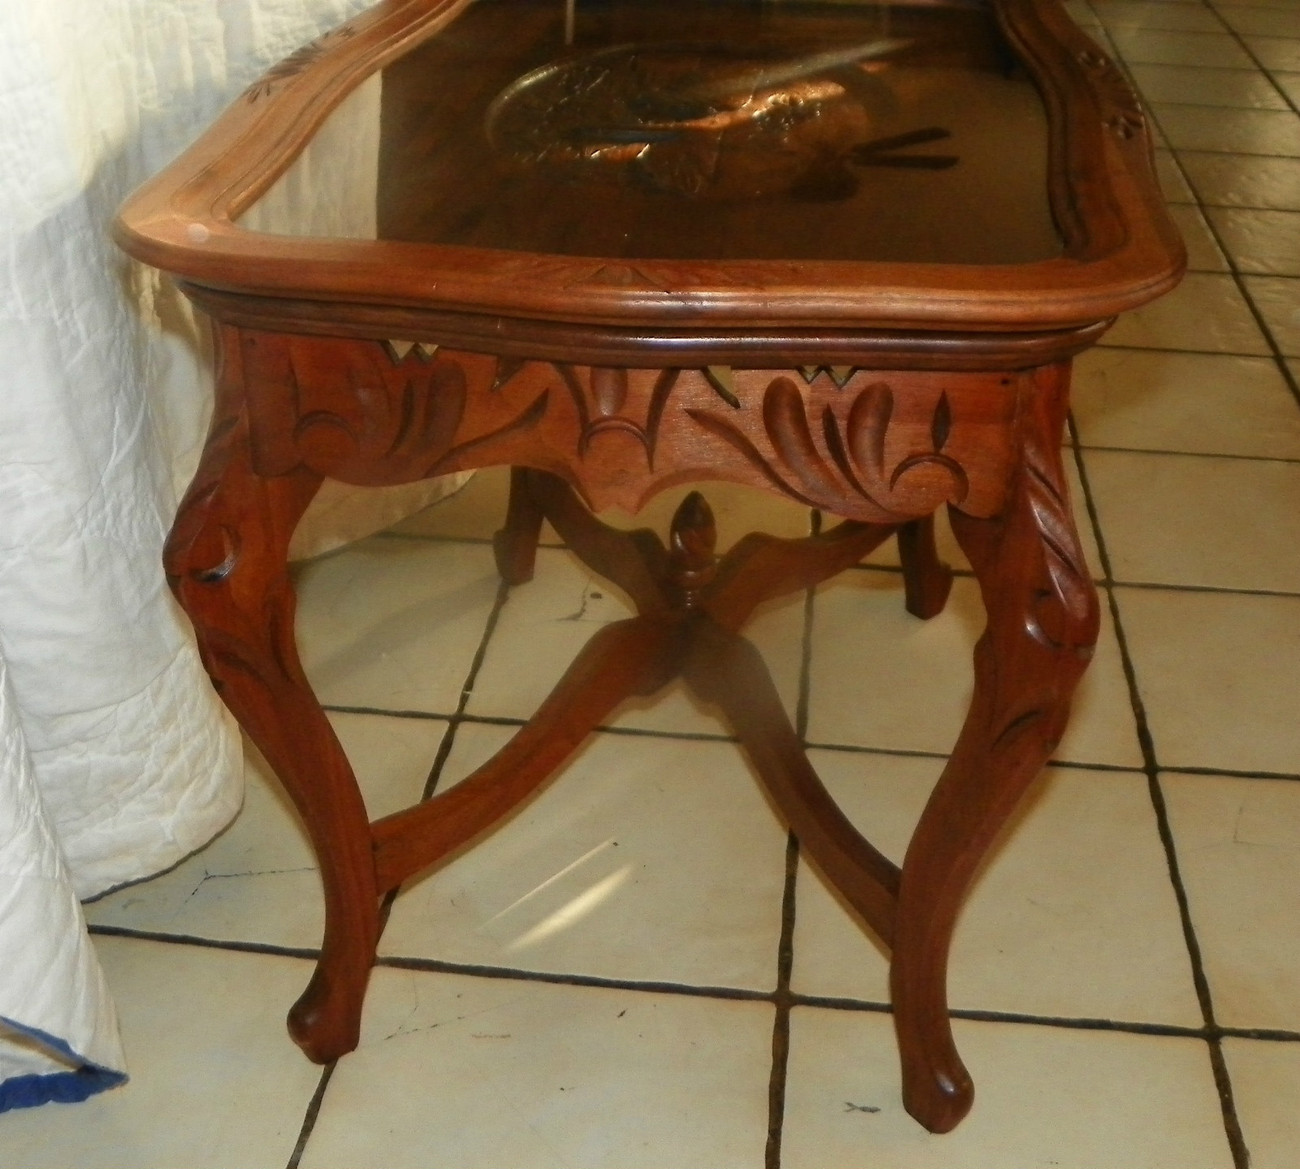 Solid Walnut Swans a Swimming Carved Coffee Table with Serving Tray  (CT14)